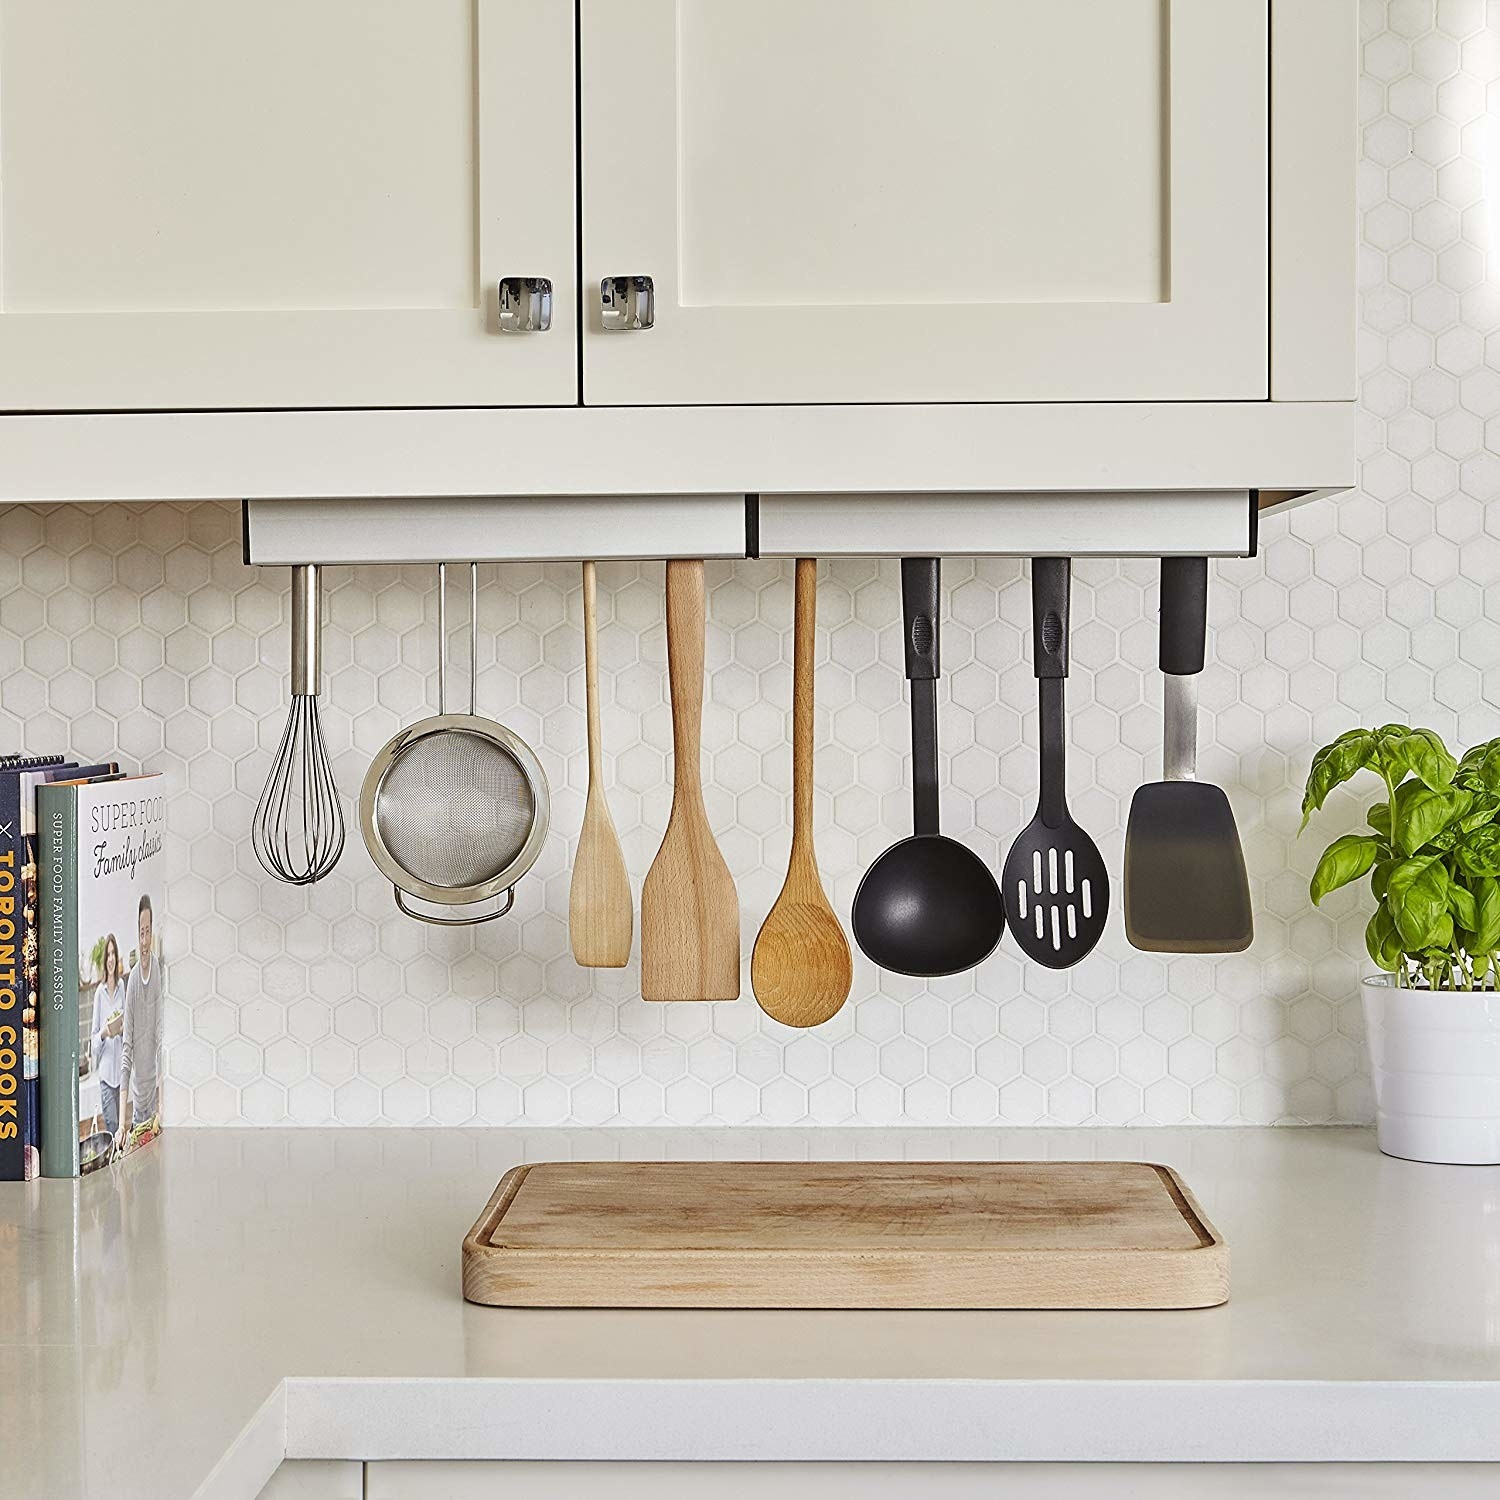 The floating kitchen organizer attached to the bottom of a cabinet with assorted kitchen utensils hanging from it